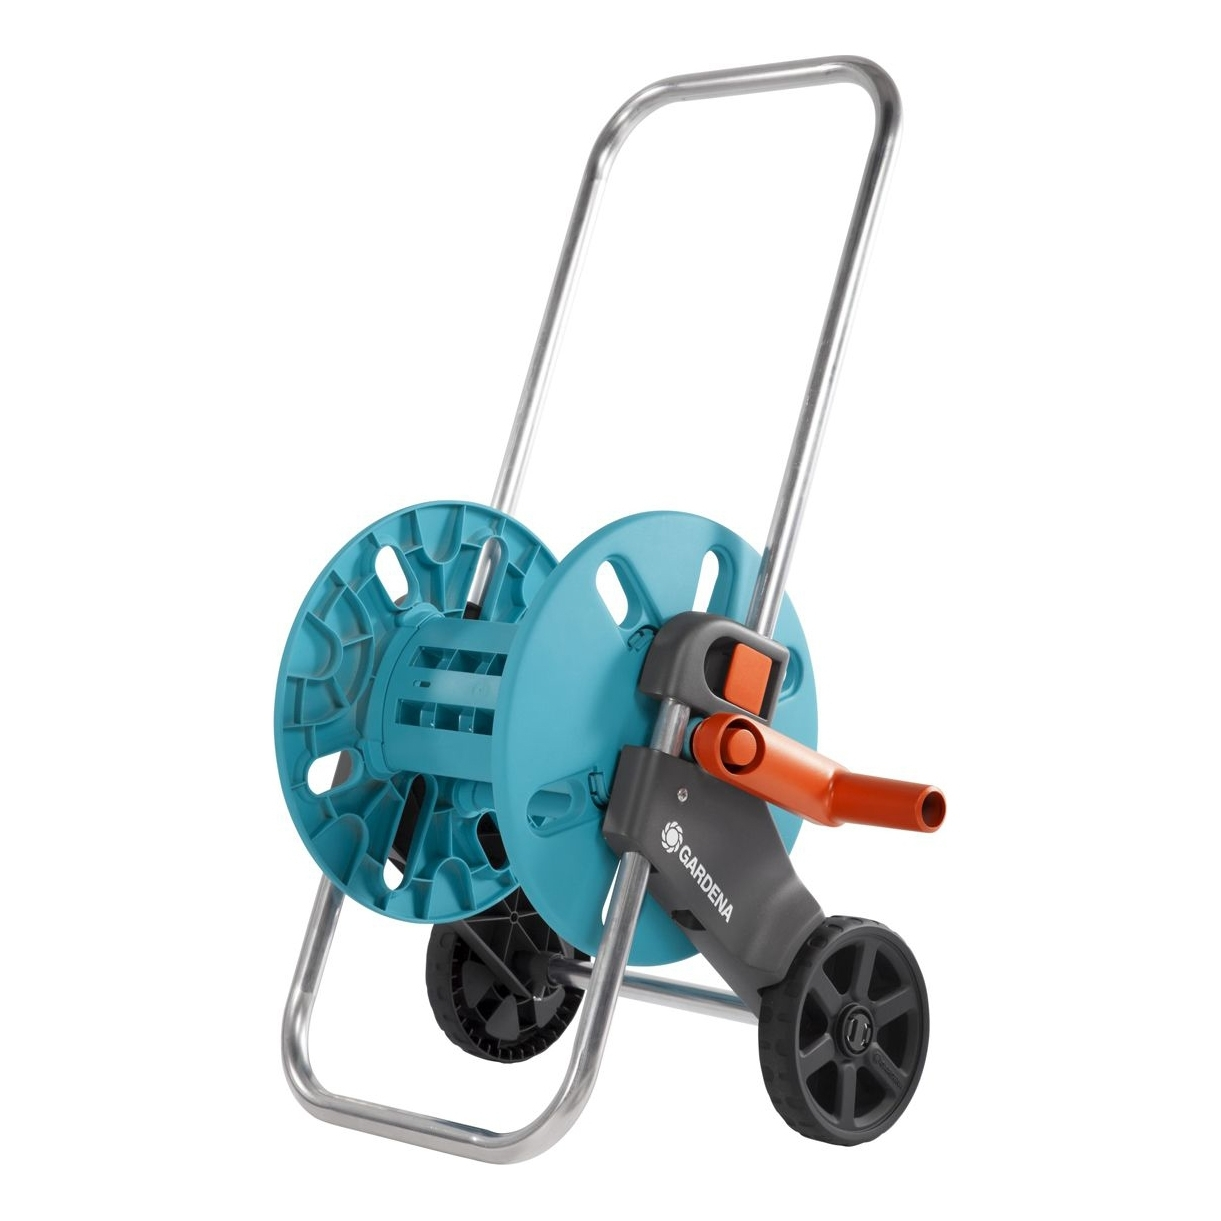 Hose Reel GARDENA 18500-20.000.00 (Maximum hose length 19mm-25 m, protection from frost, protection from течи) стоимость